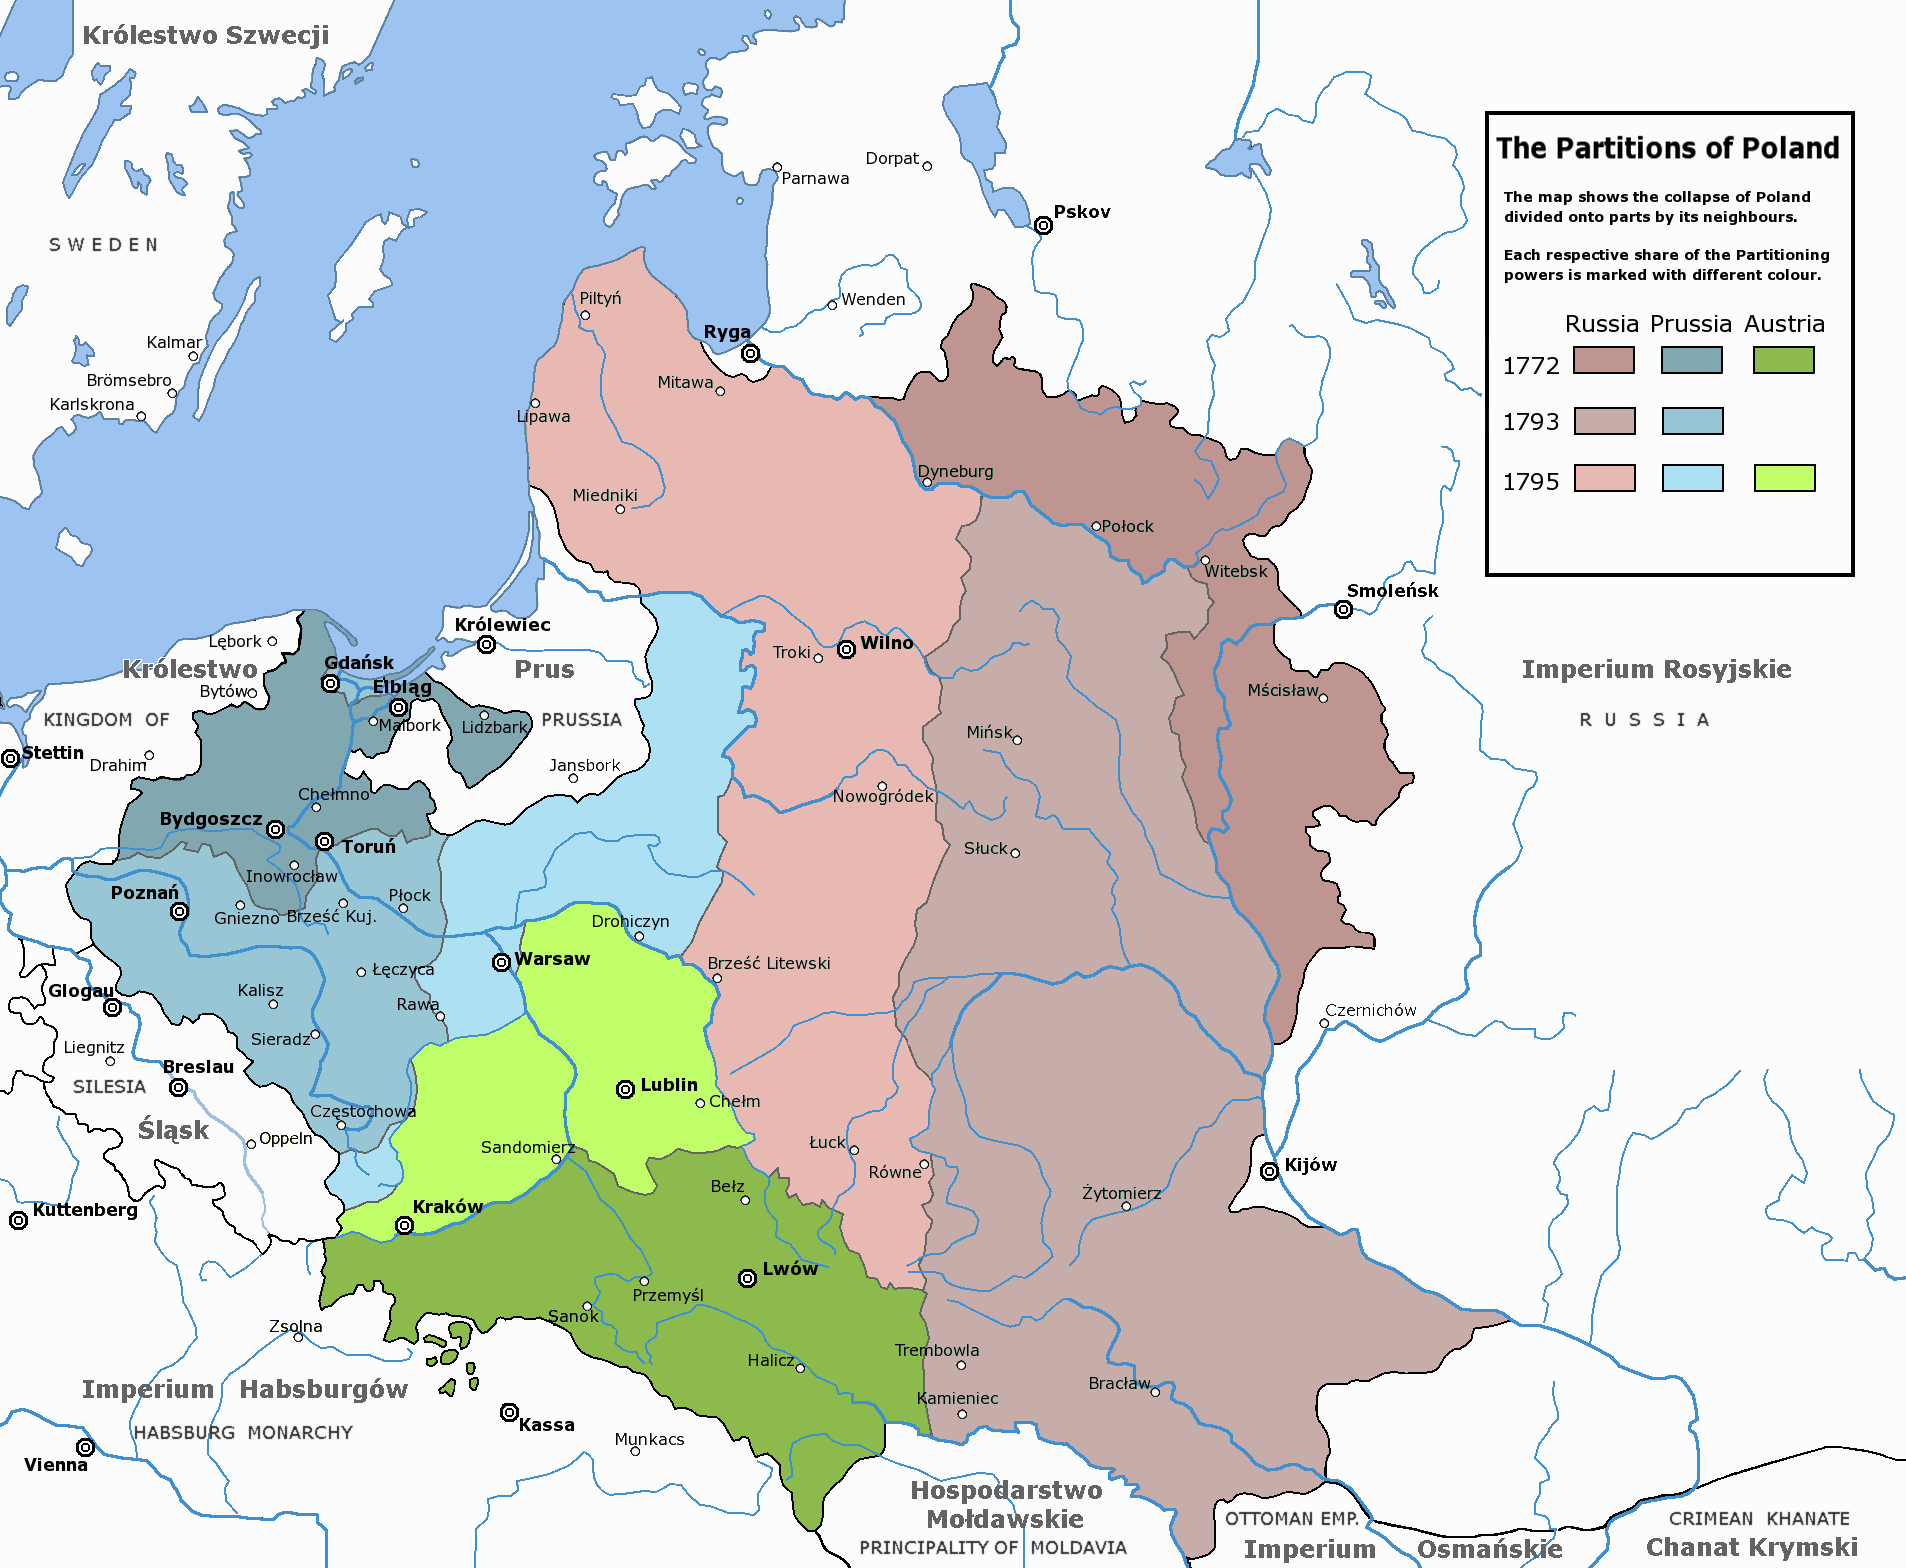 The Partitions of the Polish–Lithuanian Commonwealth